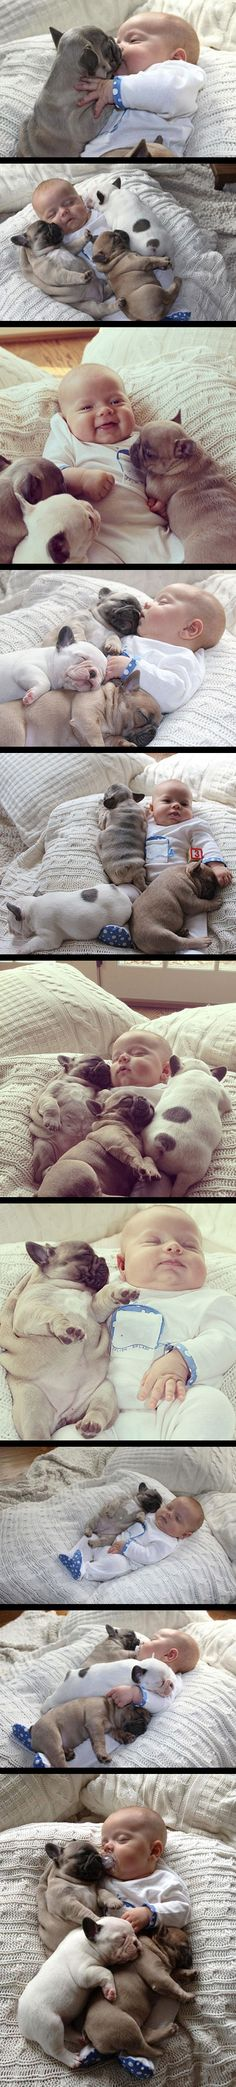 cute babies and french bulldog puppies.PUGS and BABIES! So Cute Baby, Cute Babies, Chubby Babies, Lil Baby, Baby Animals, Funny Animals, Cute Animals, Cute Puppies, Cute Dogs